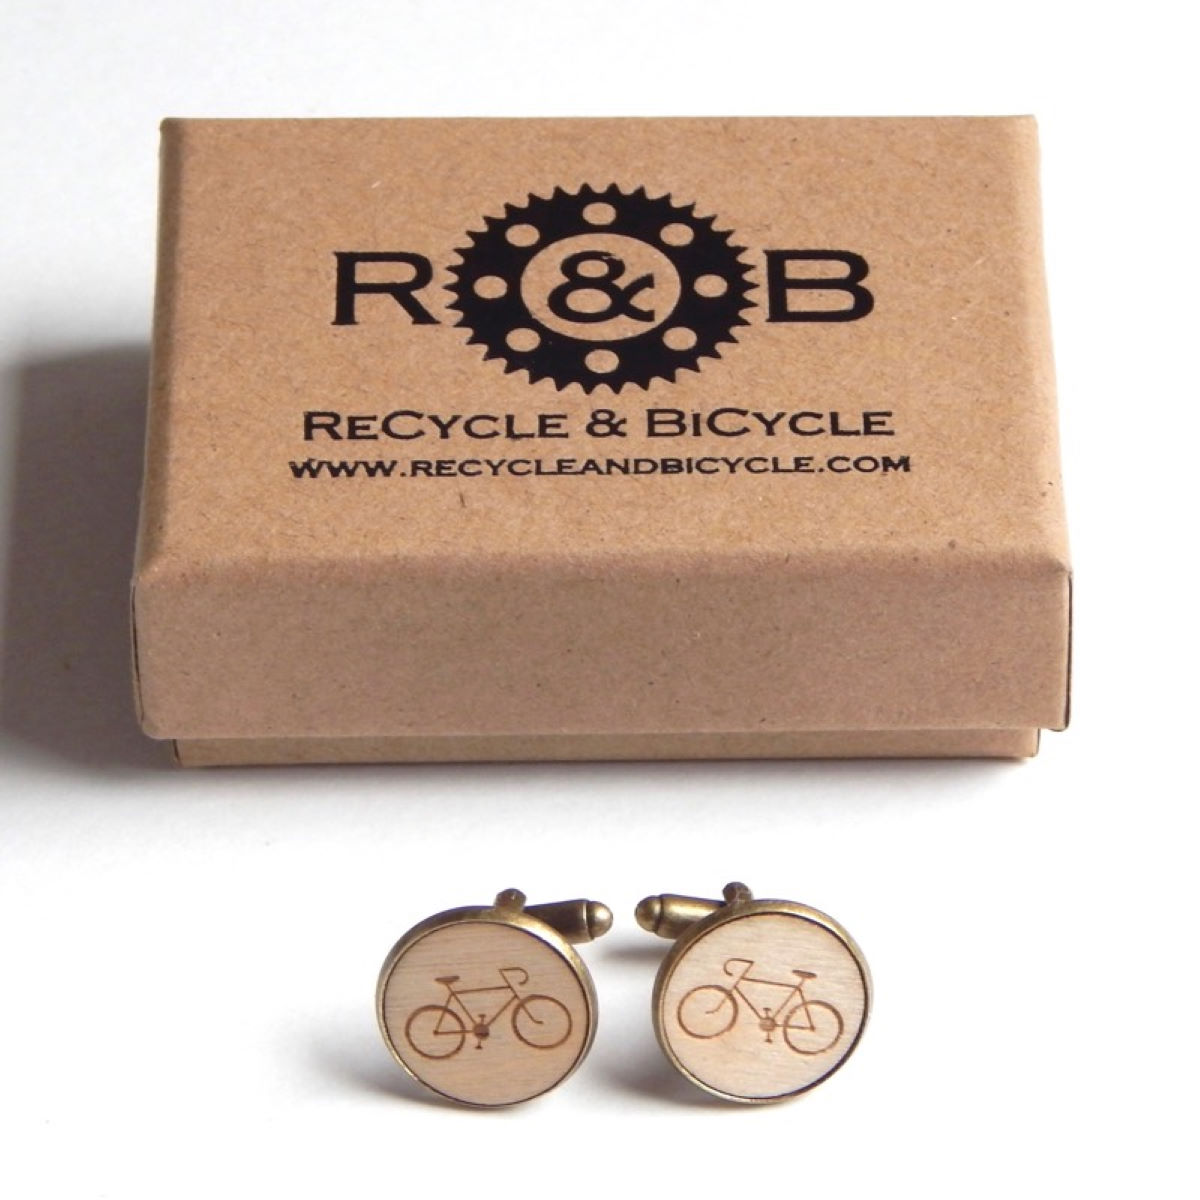 Recycle and Bicycle Recycle and Bicycle Wooden Bicycle Cufflinks   Gifts